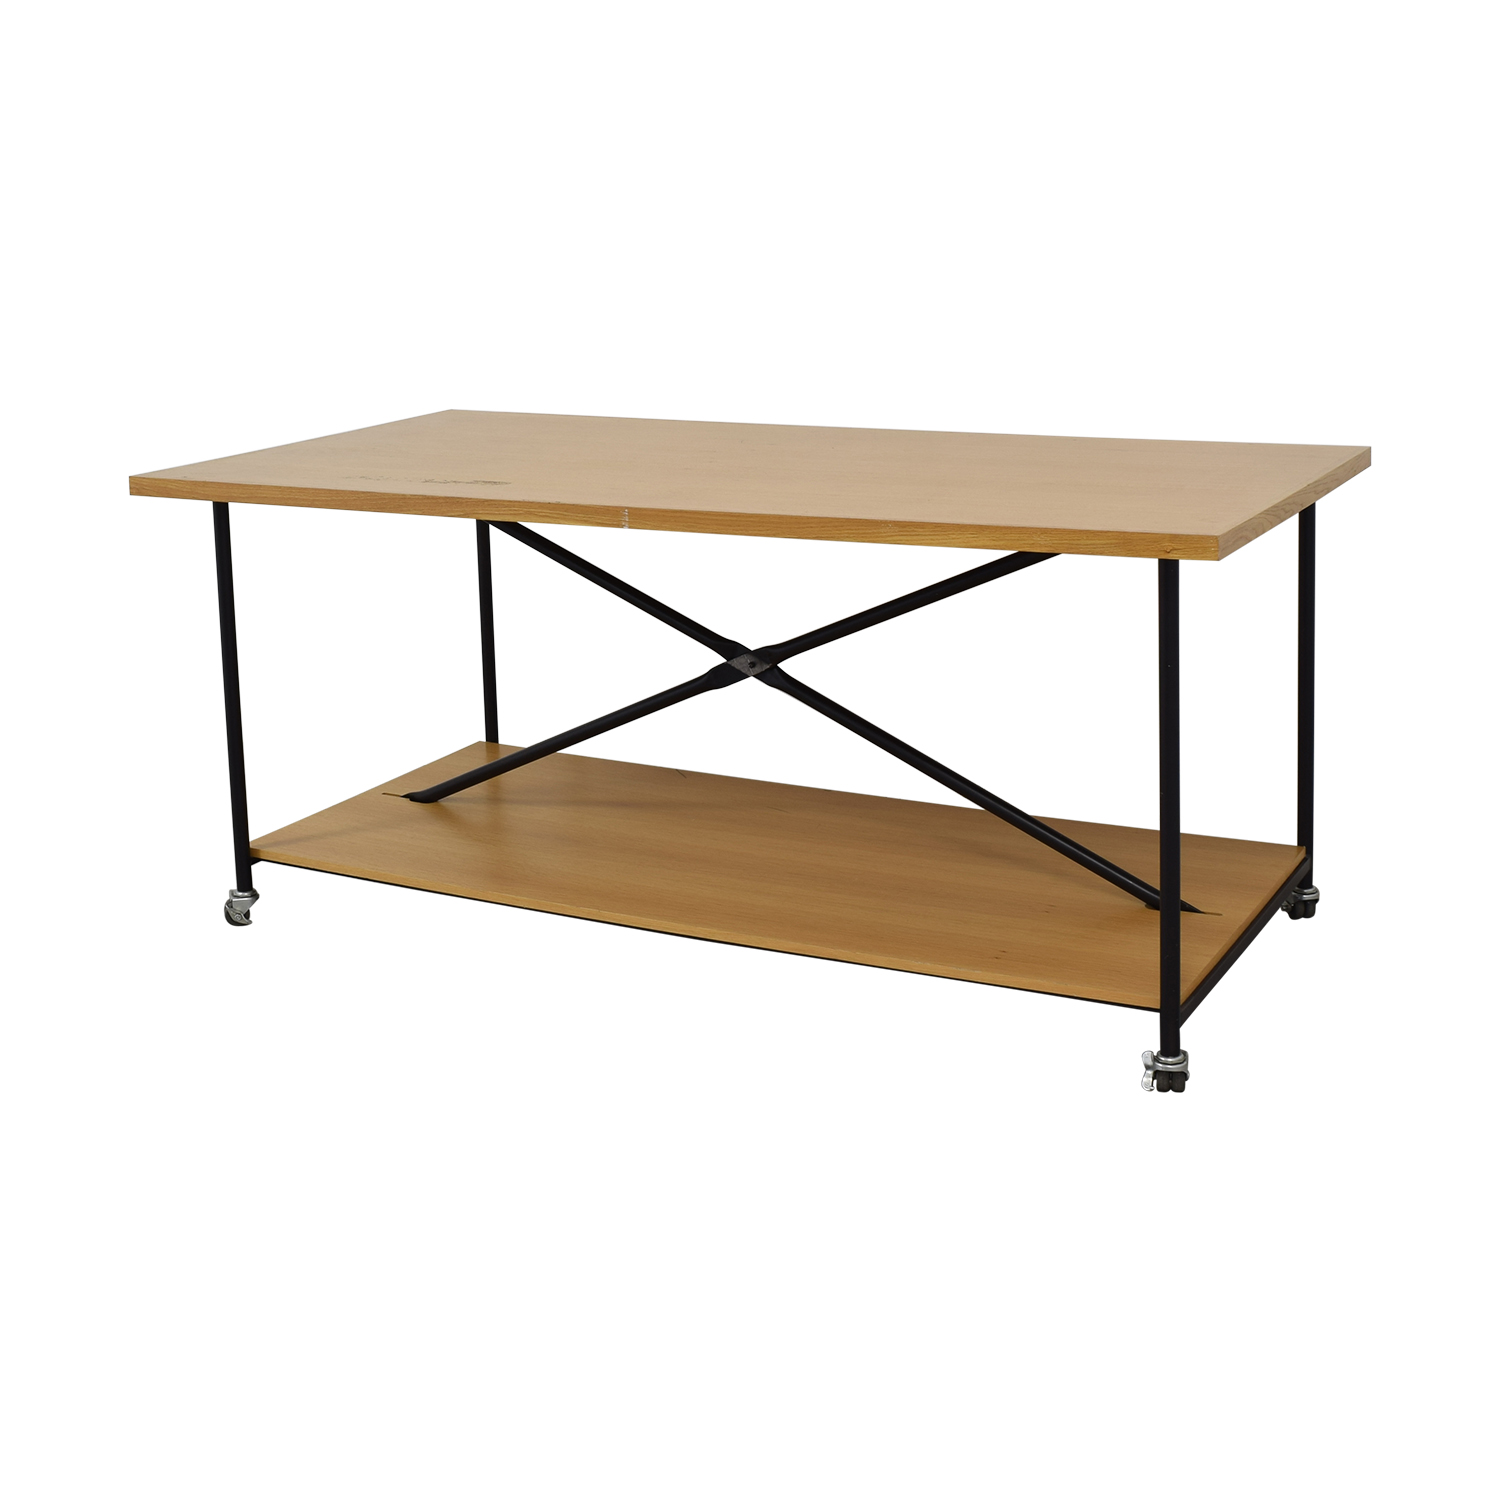 Wooden Work Table with Wheels on sale